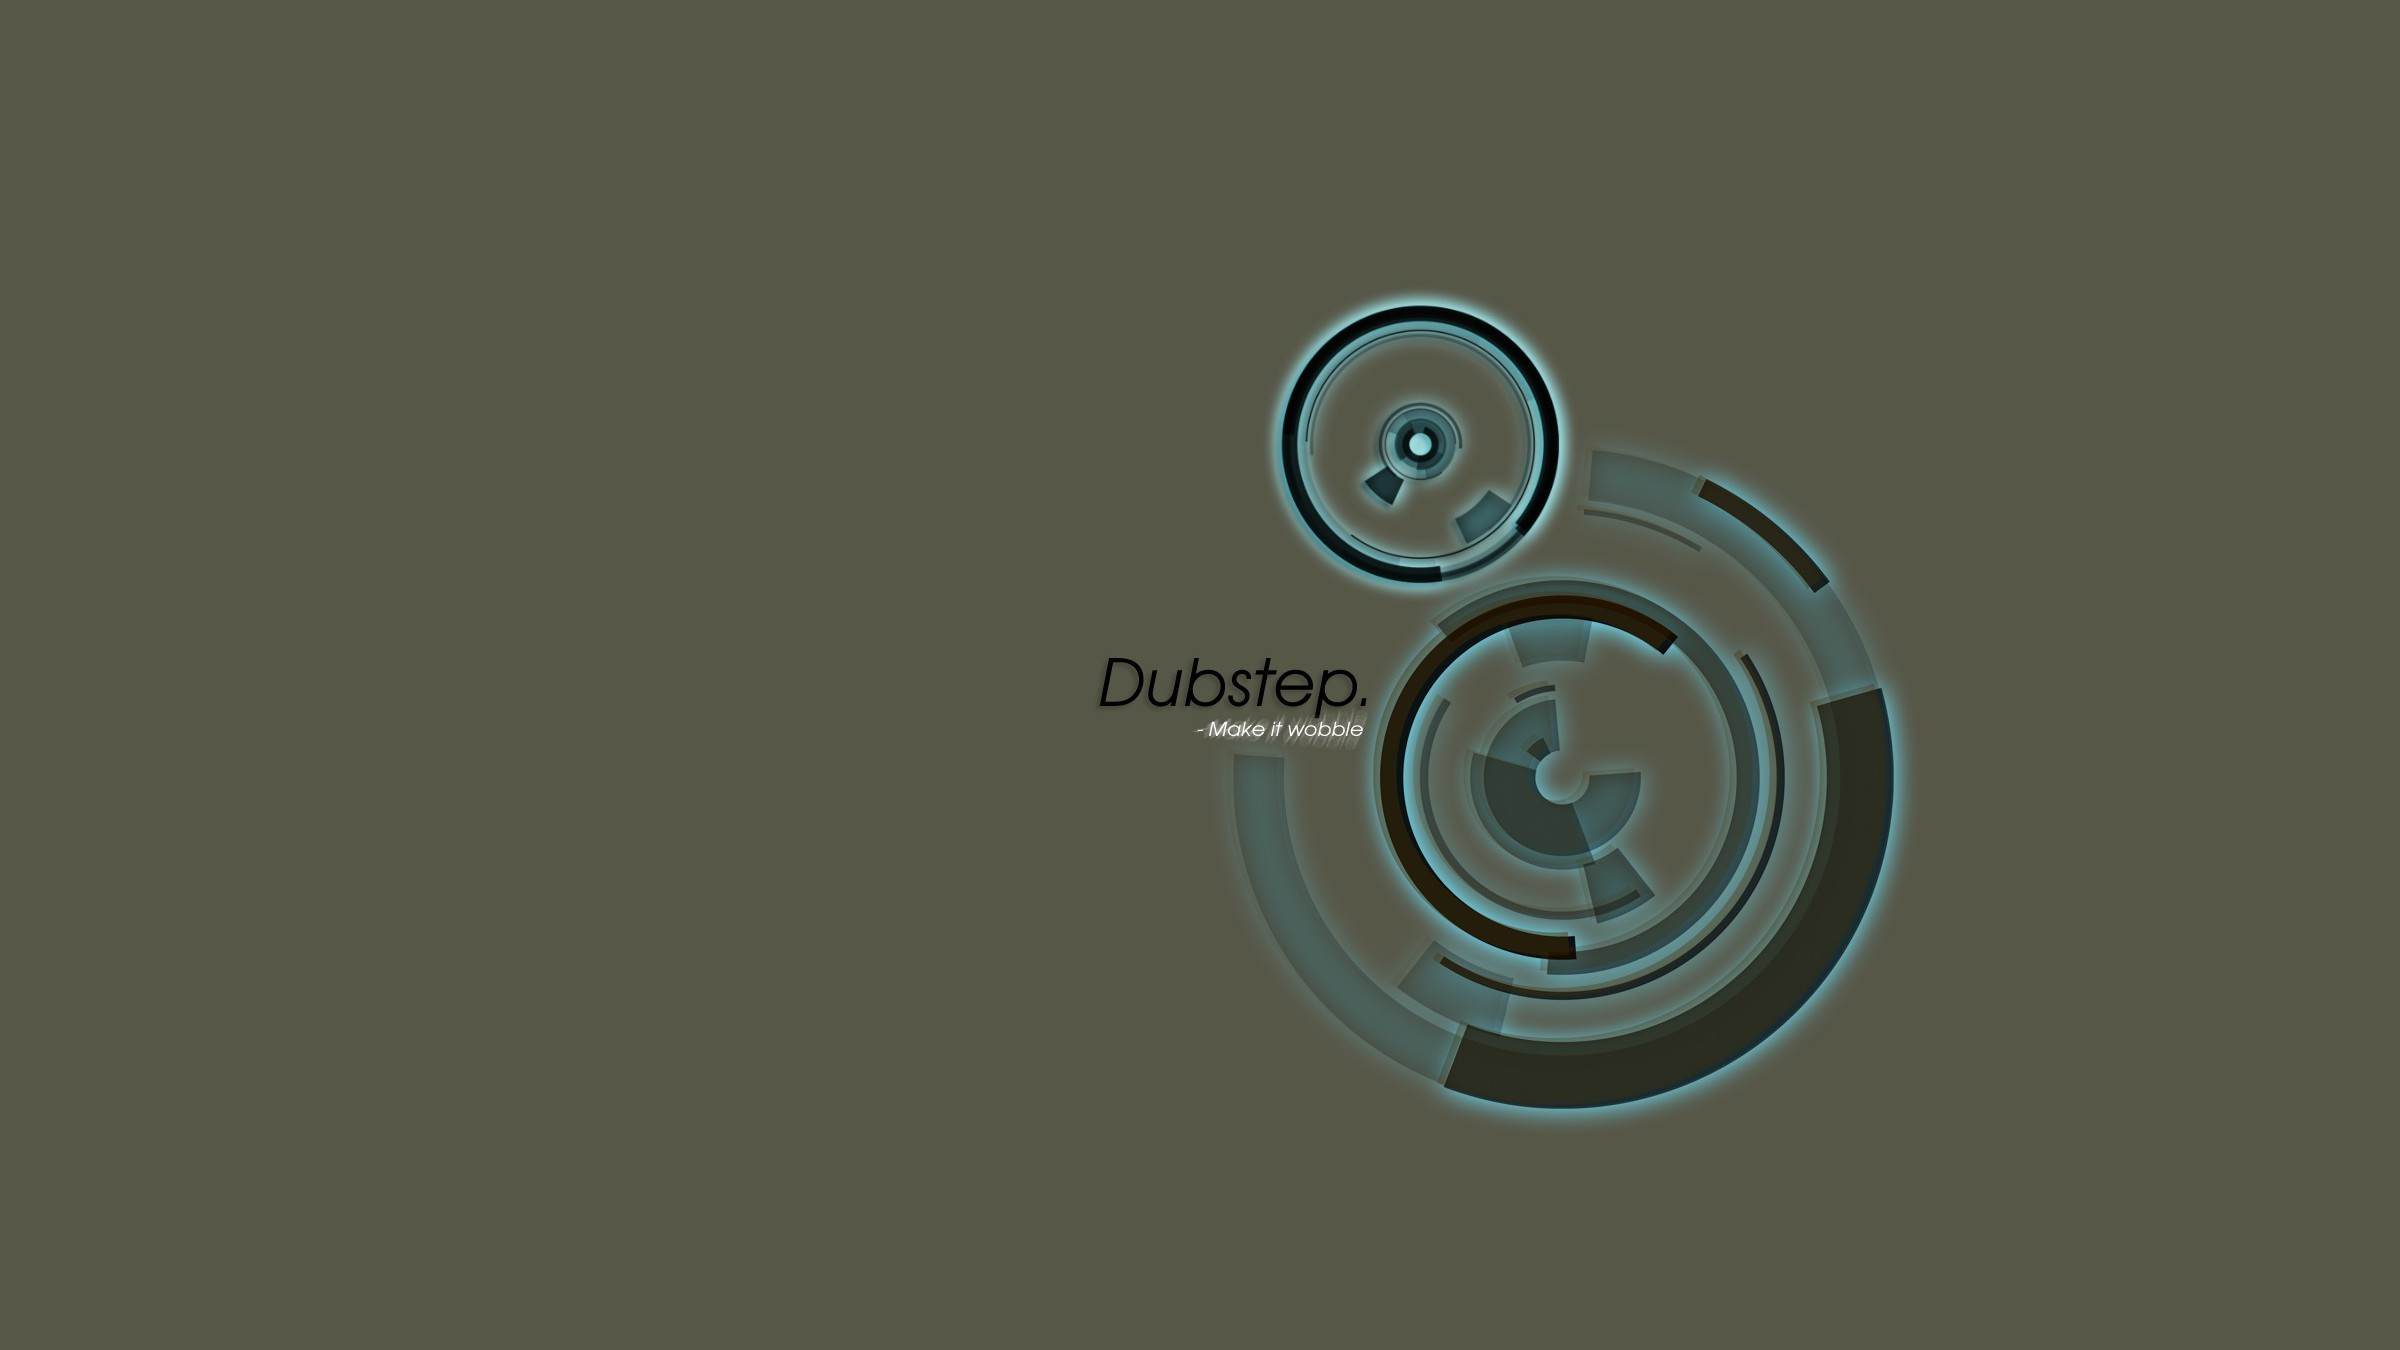 abstract dubstep wallpaper 1080p - photo #38